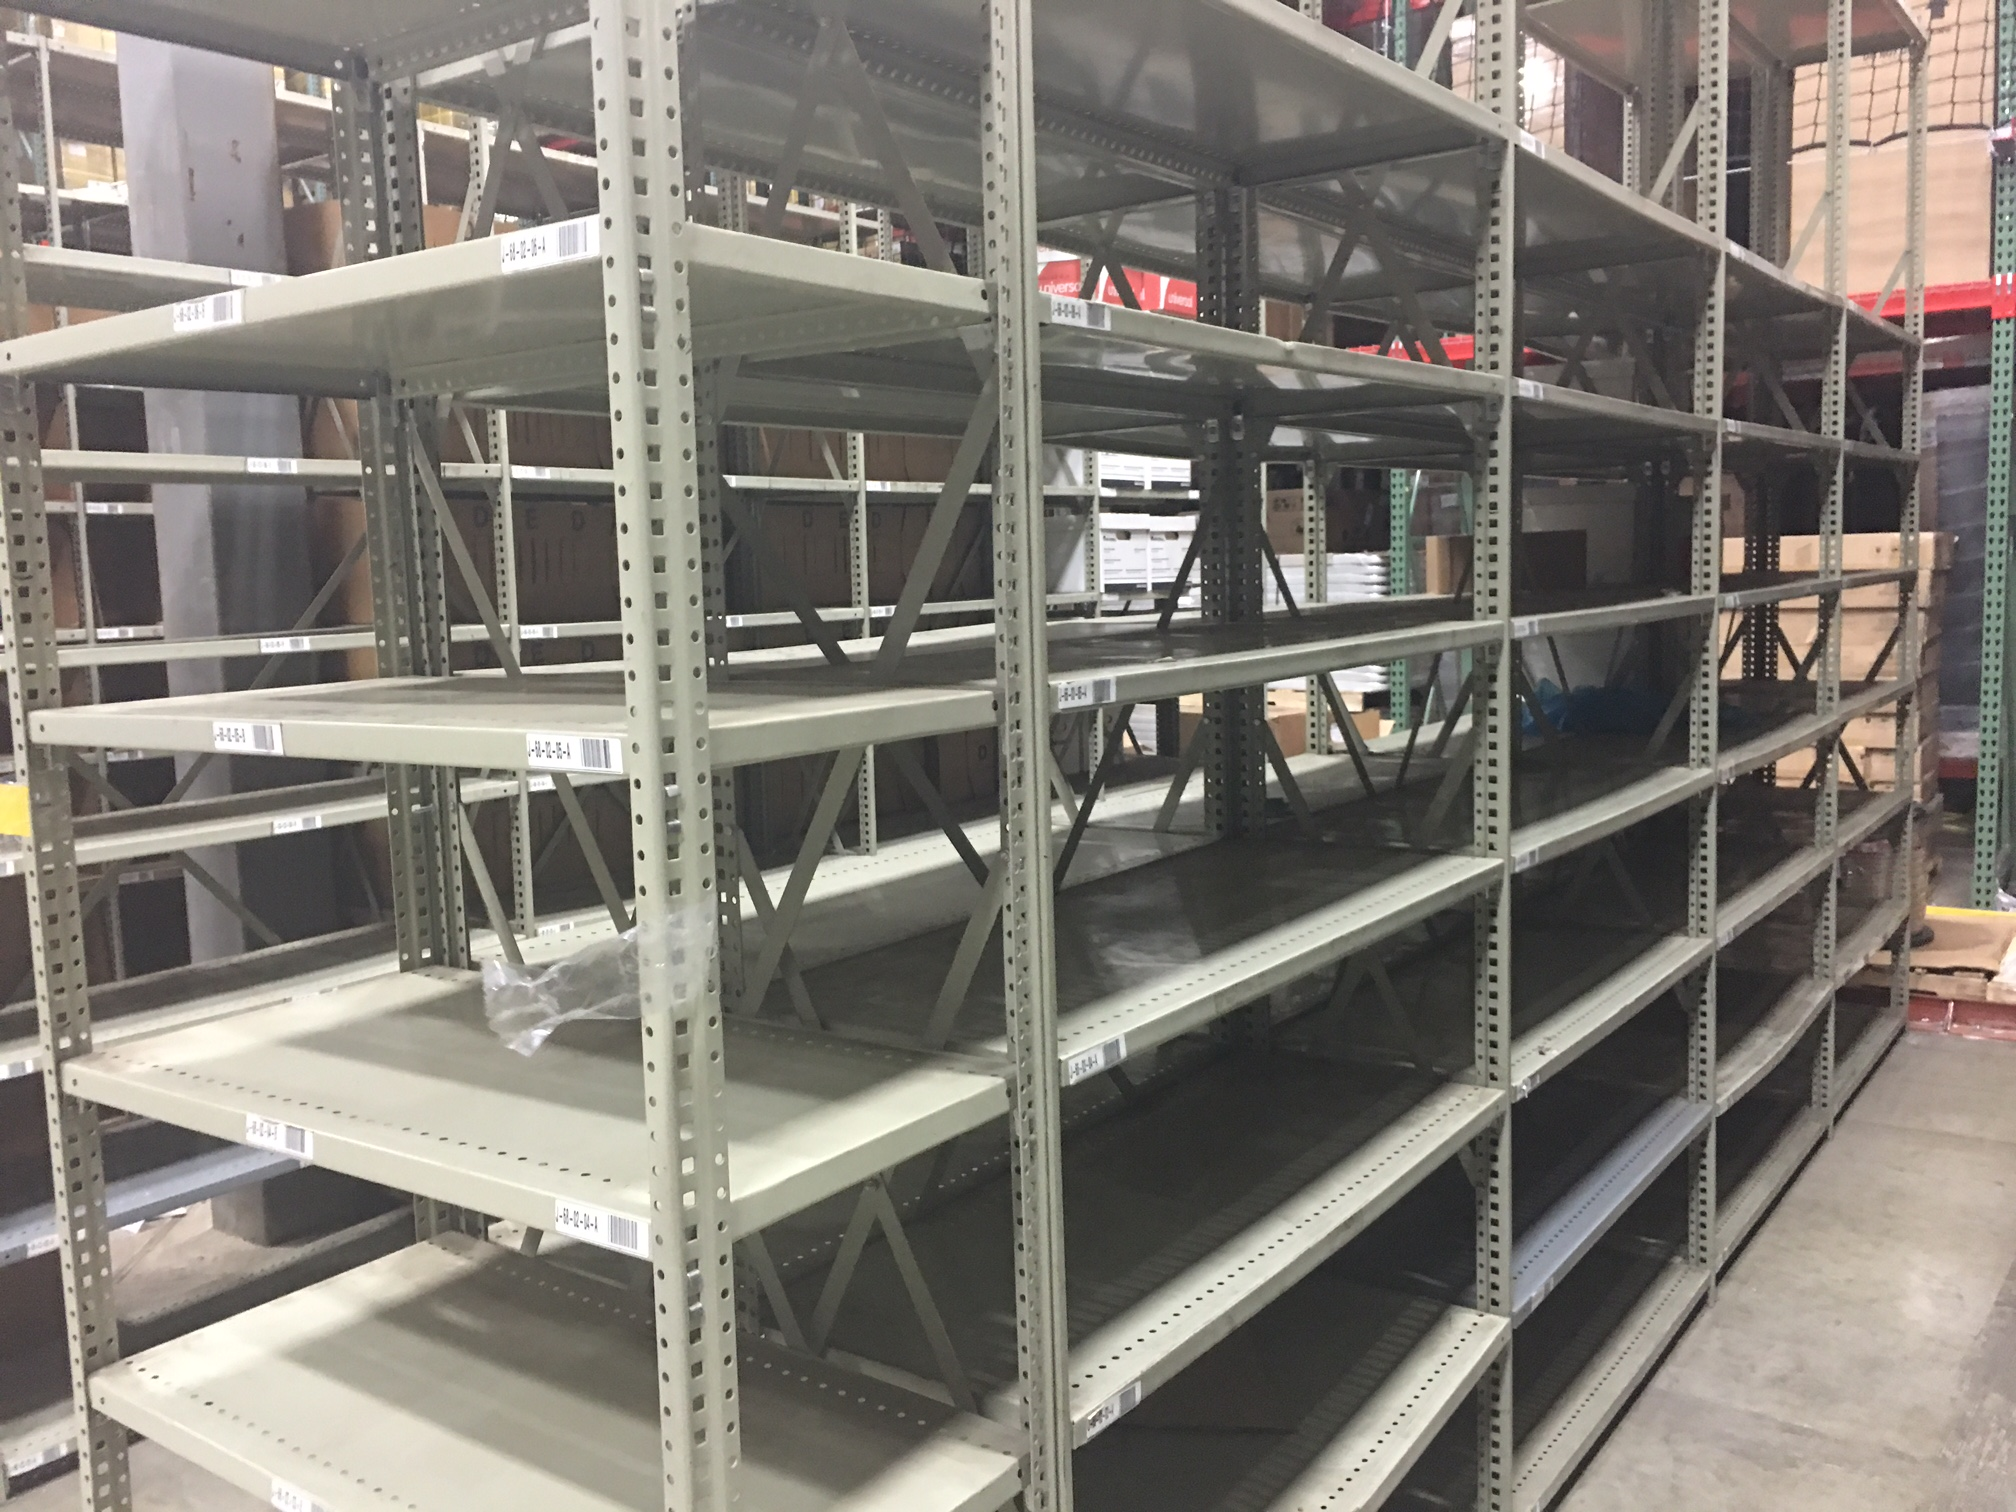 Storage shelving systems